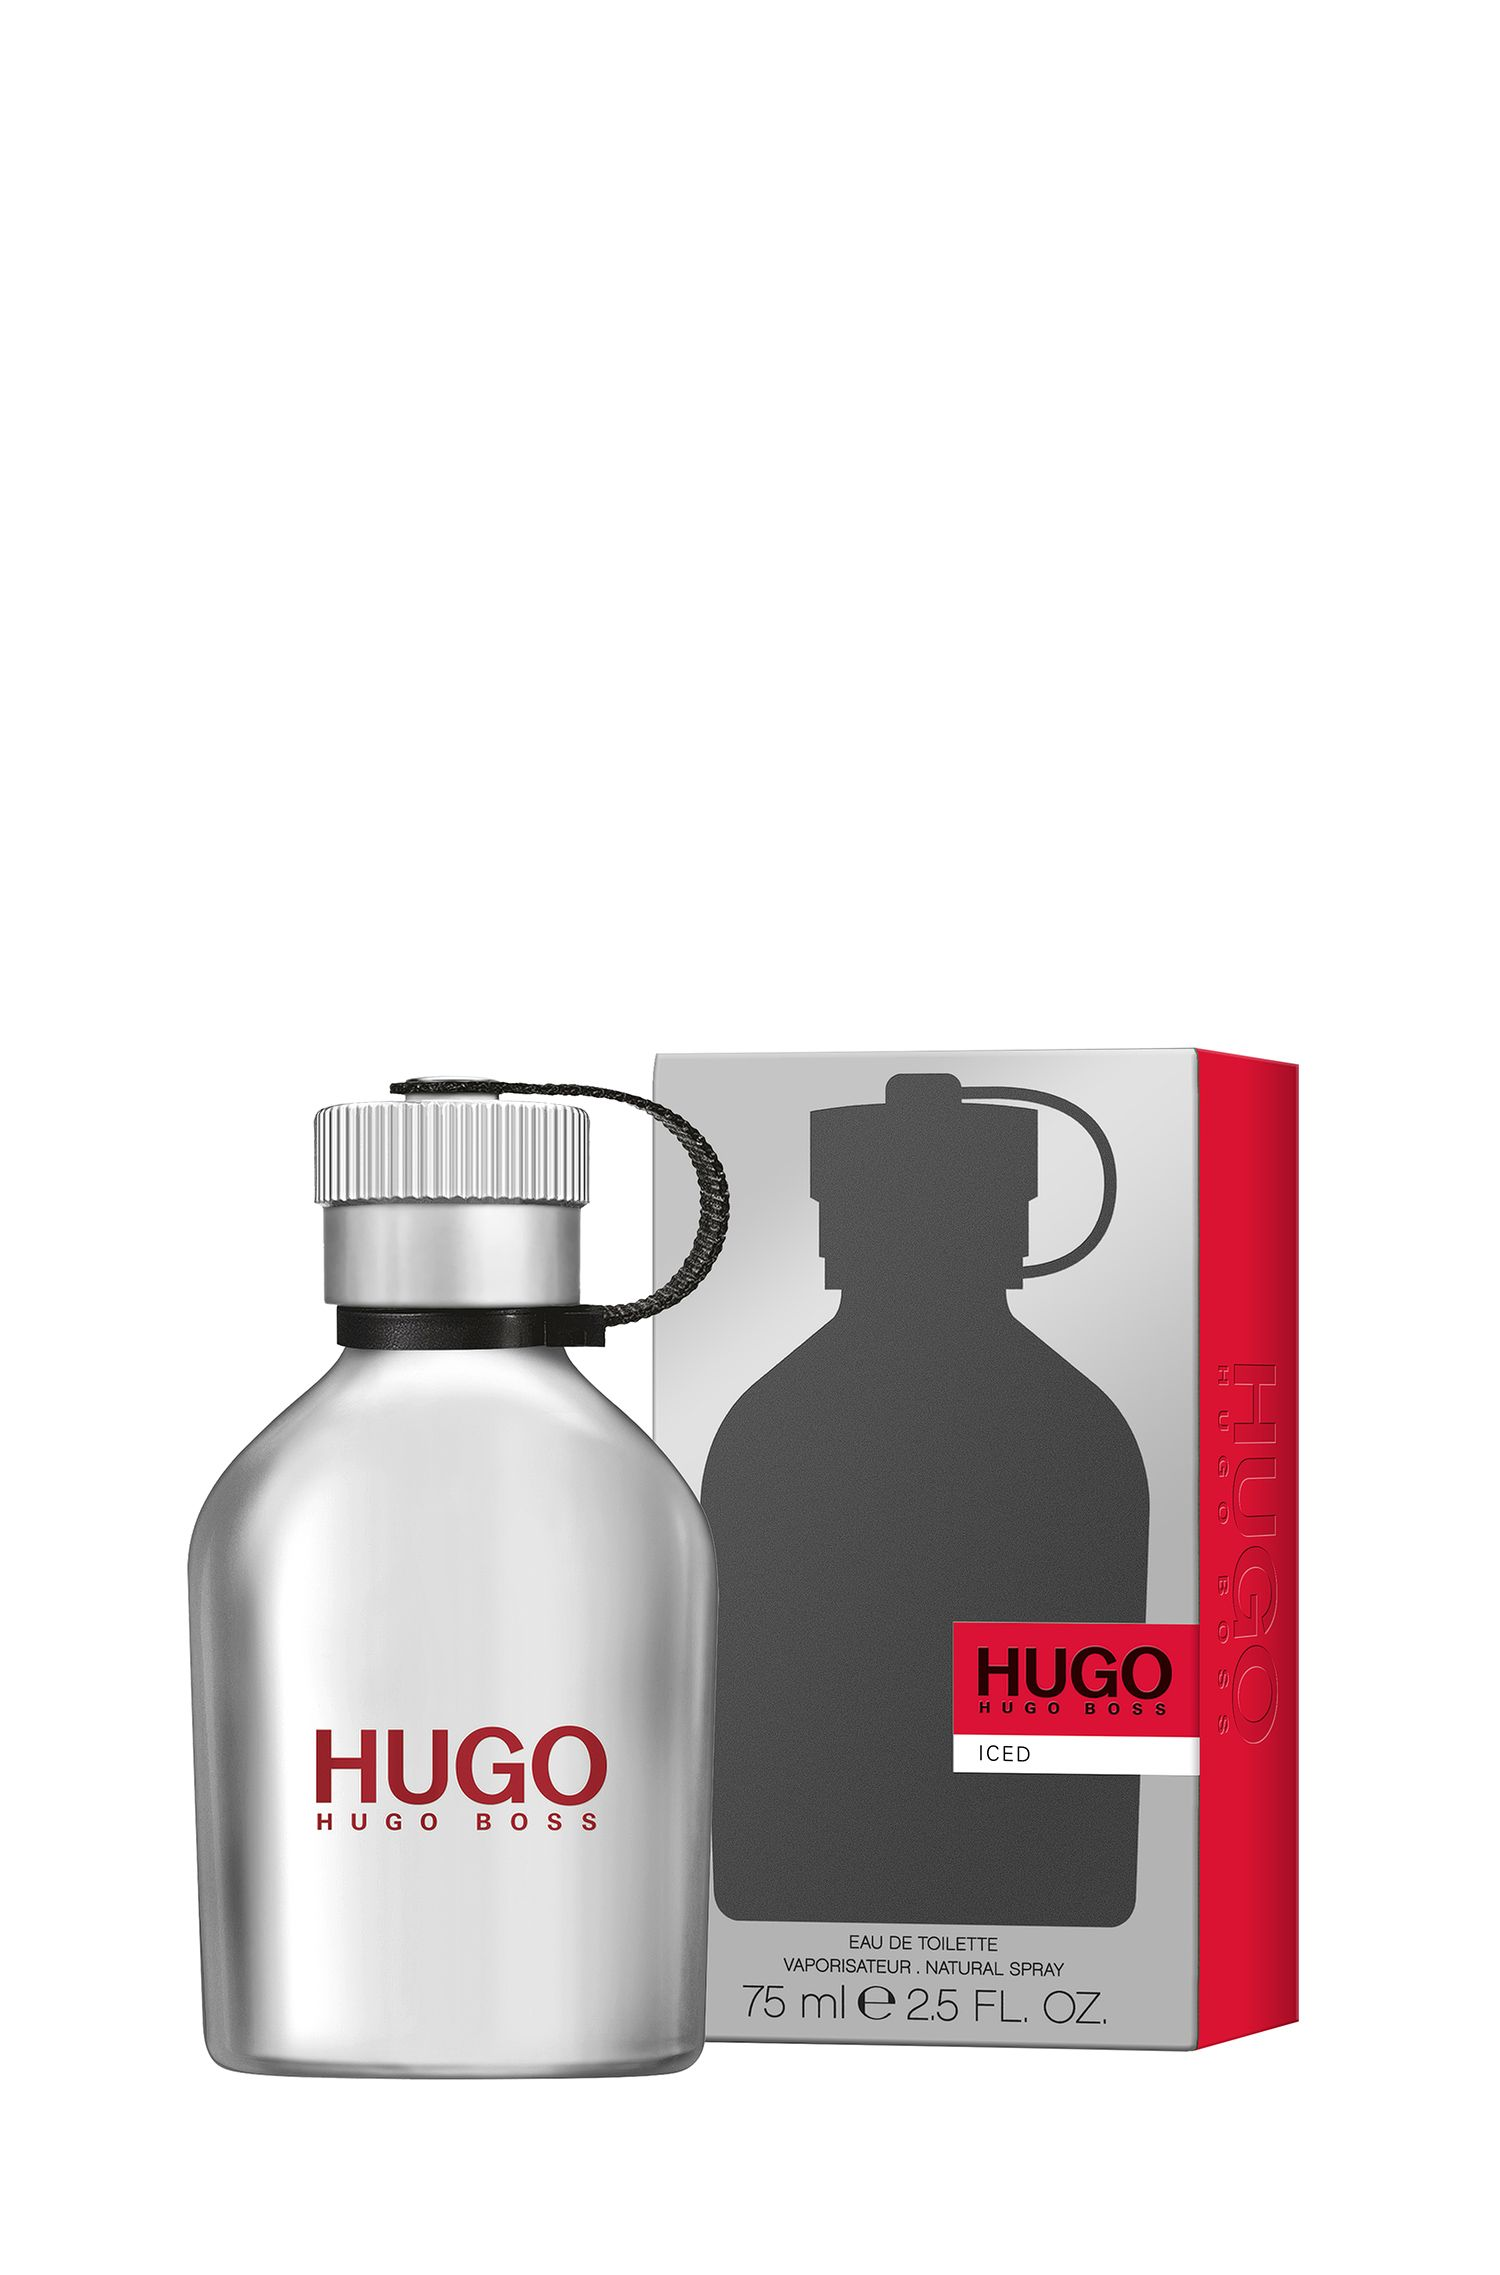 HUGO Iced-eau de toilette 75 ml